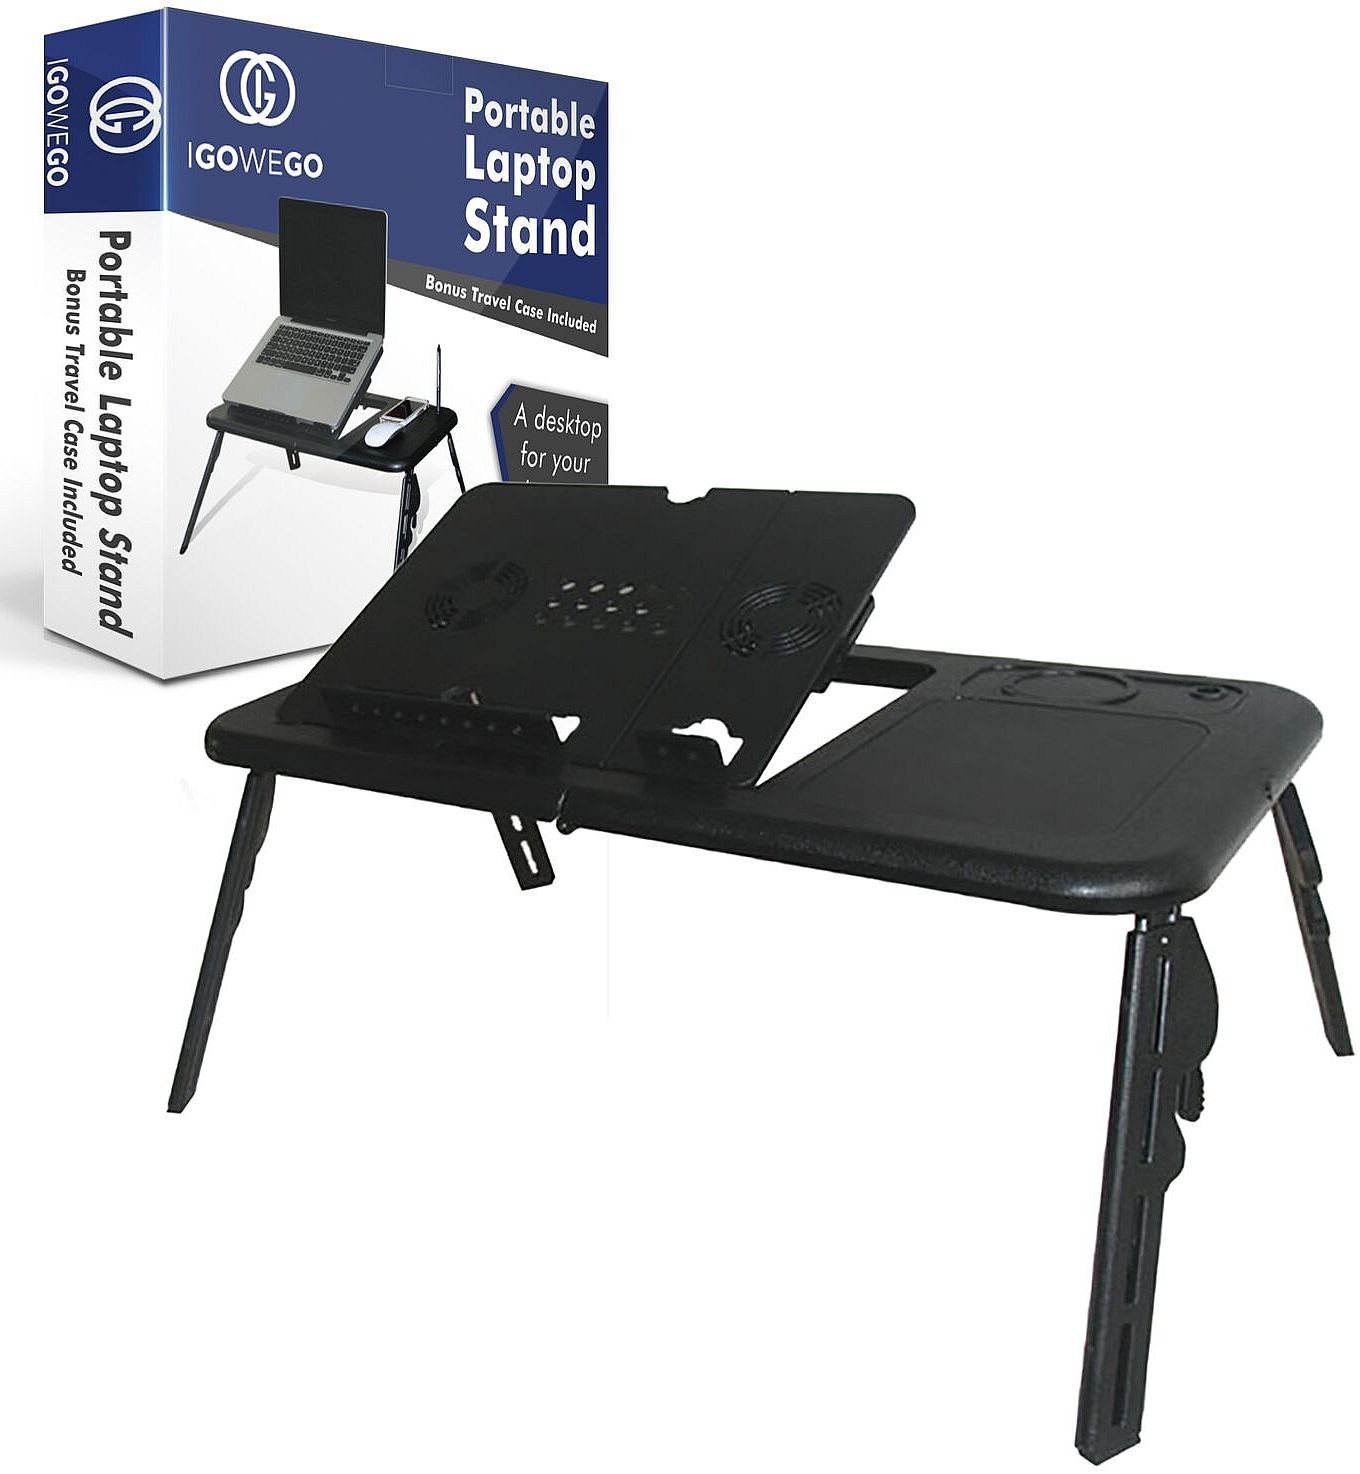 Portable Laptop Table - Stand Up Computer Desk – Create a Better Work Space With Adjustable Height and Tilt – Use Sitting or Standing - Quiet Cooling Fan – Lightweight Foldable Set With Bonus Case